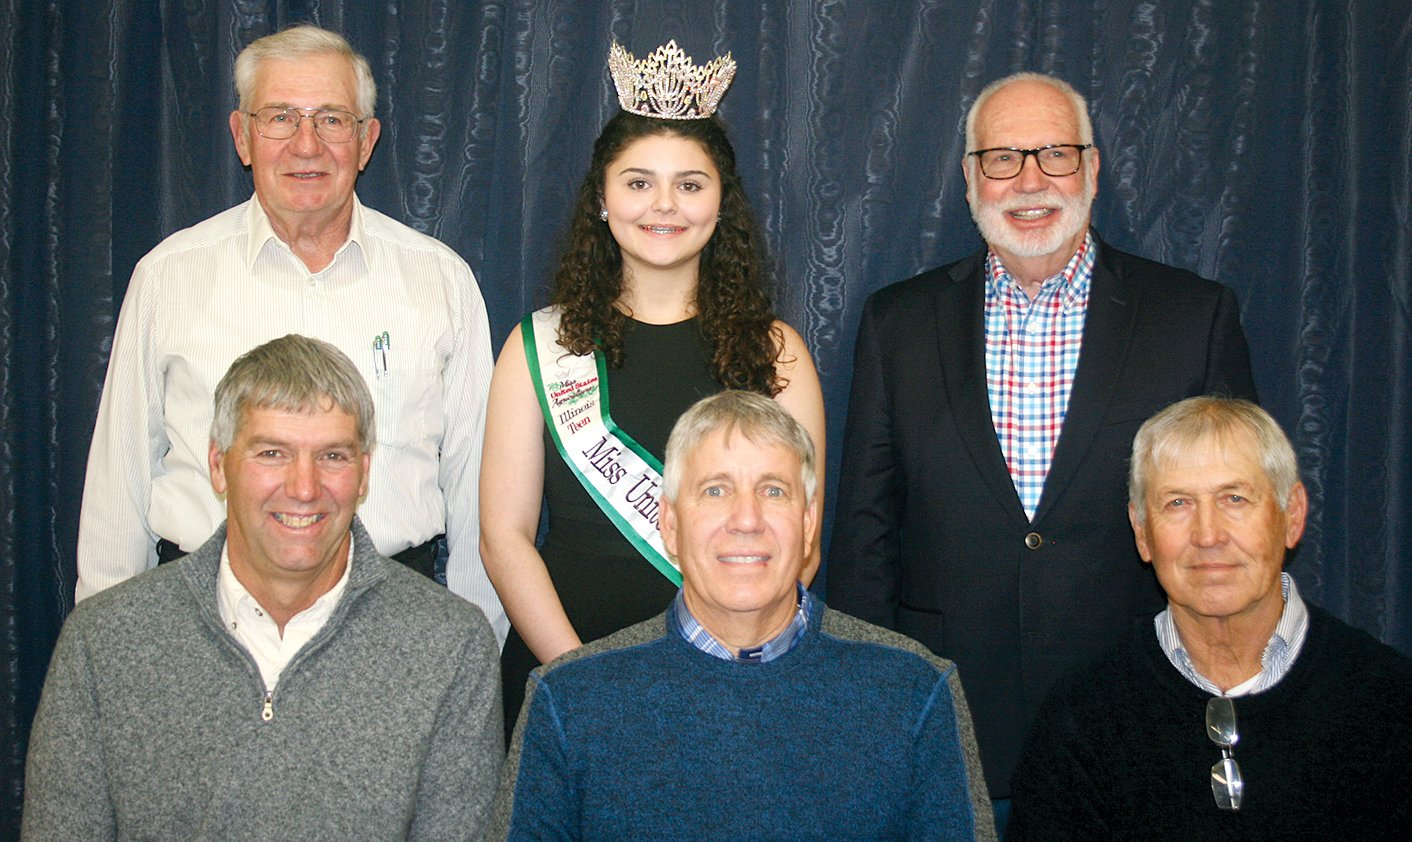 In front, from the left, are board members Dennis Hand, Dave Schluckebier and Dave Pastrovich. In back, from the left, are board member Ken Suslee, Teen Miss Illinois United States Agriculture Elaan Bader and Associate Director Dick Lyons. Not pictured are Chairman Jason Anderson and Associate Directors Danny Eck and Bob Wilson.